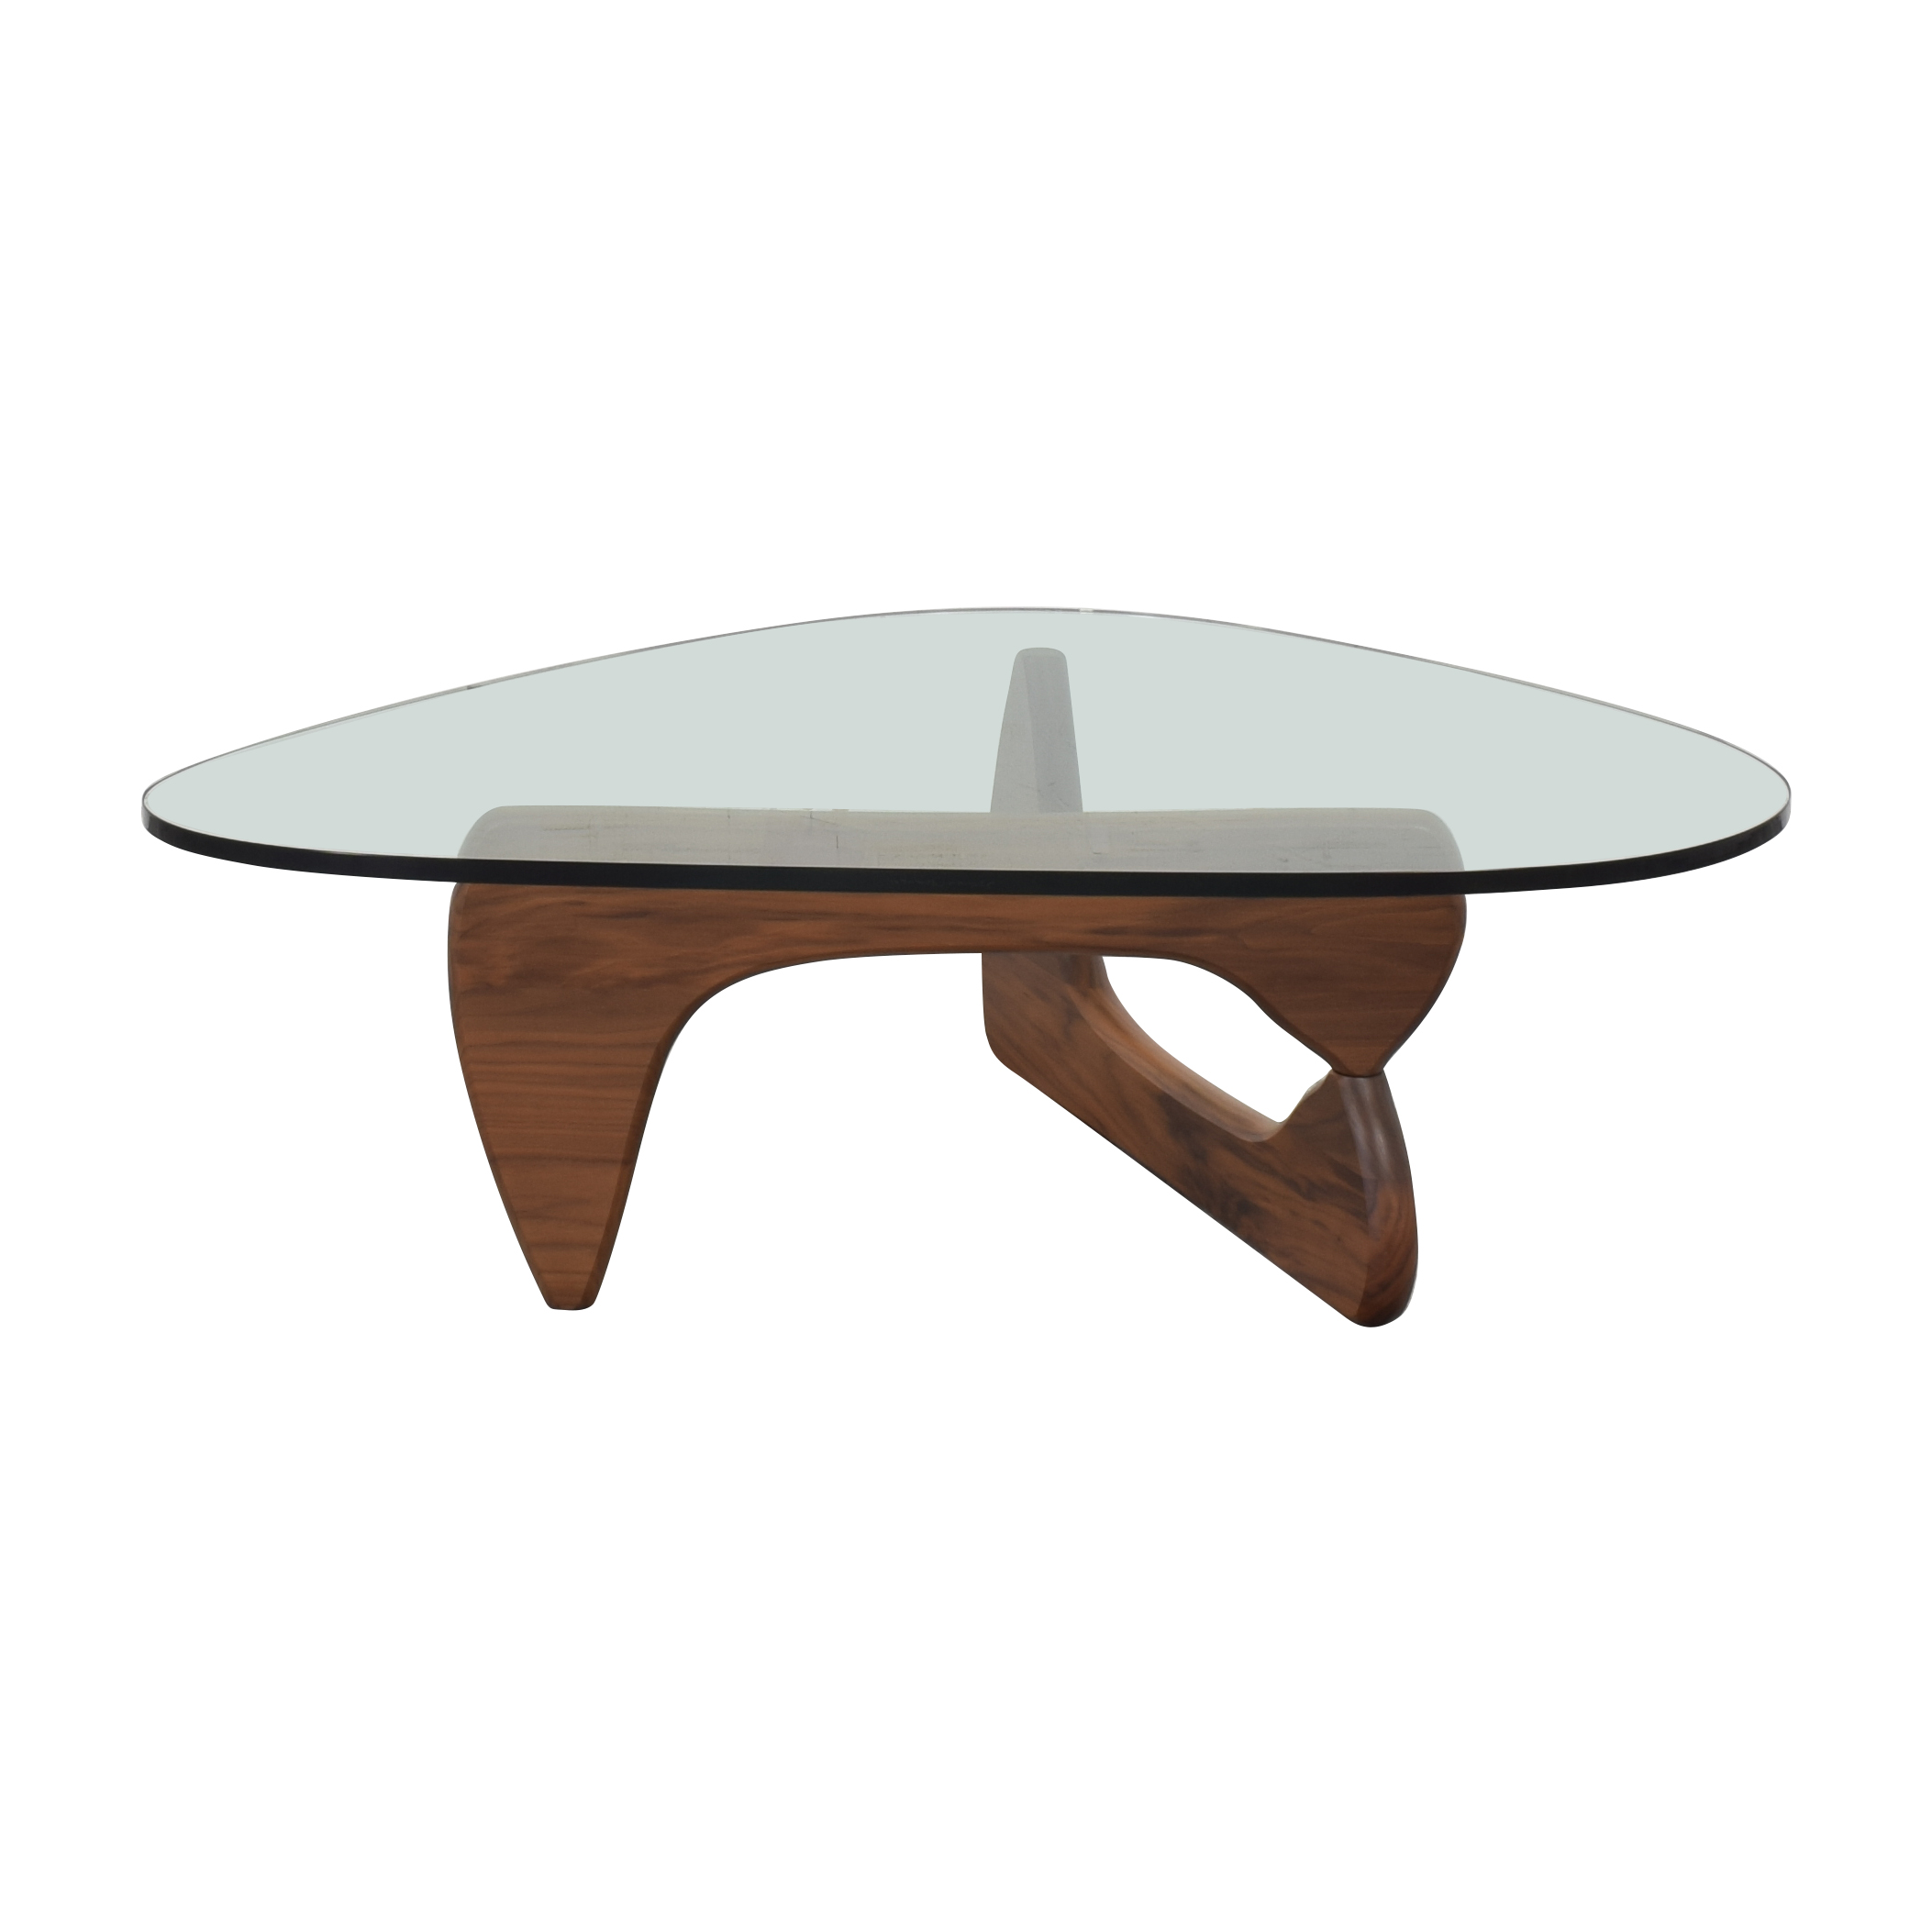 Herman Miller Noguchi Coffee Table / Coffee Tables